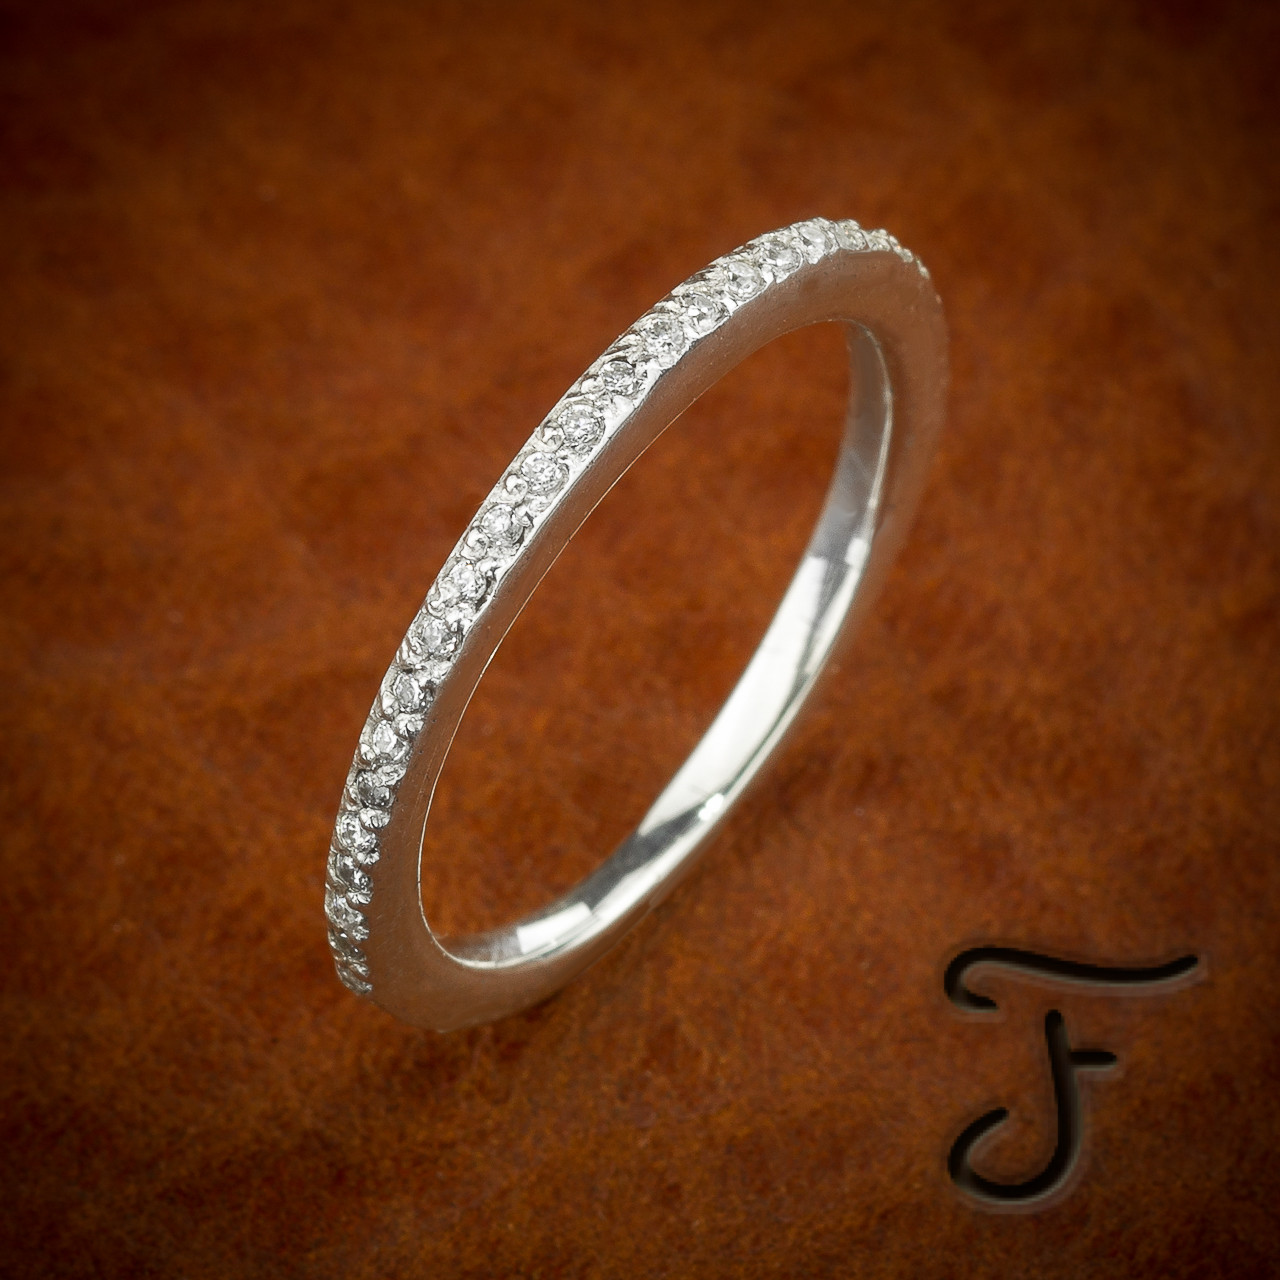 She Wants A Handmade Silver Ring With Simple Elegance